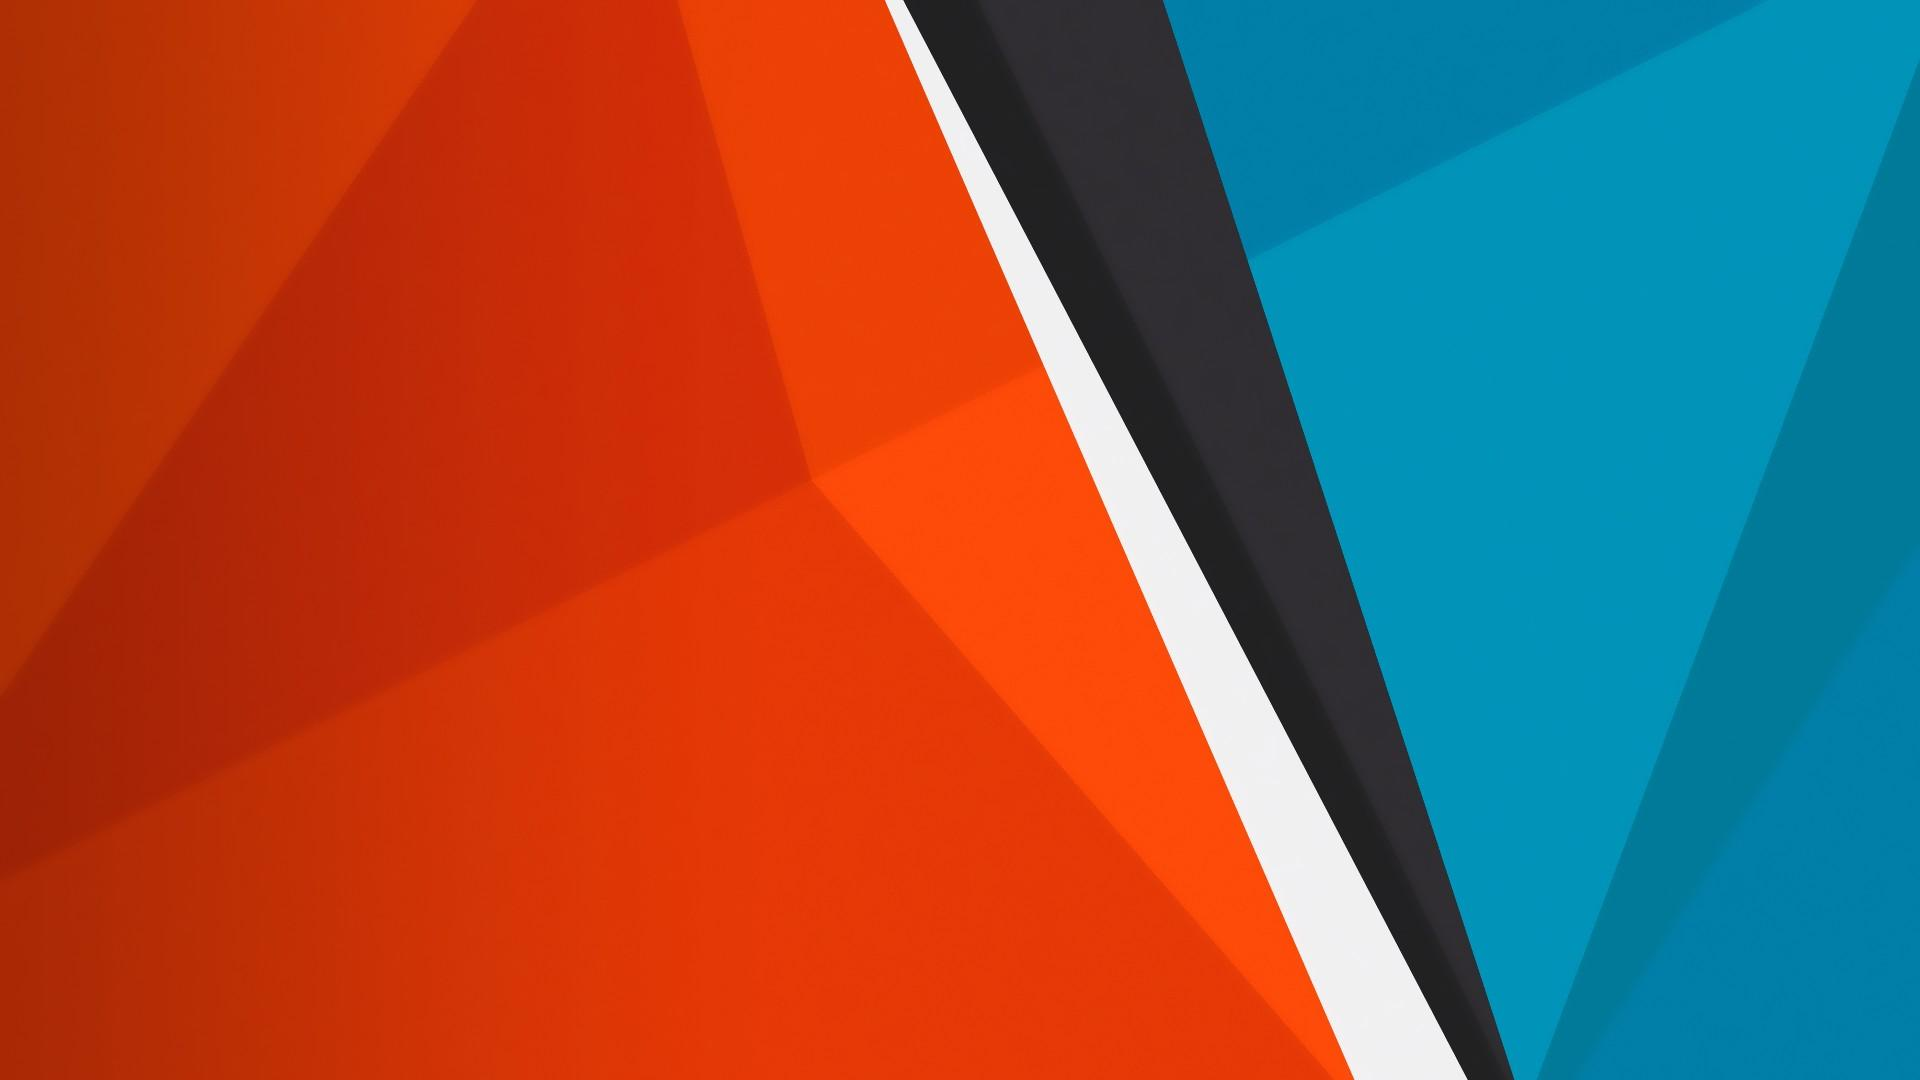 Free Download Abstract Shapes Htc High Definition Sense